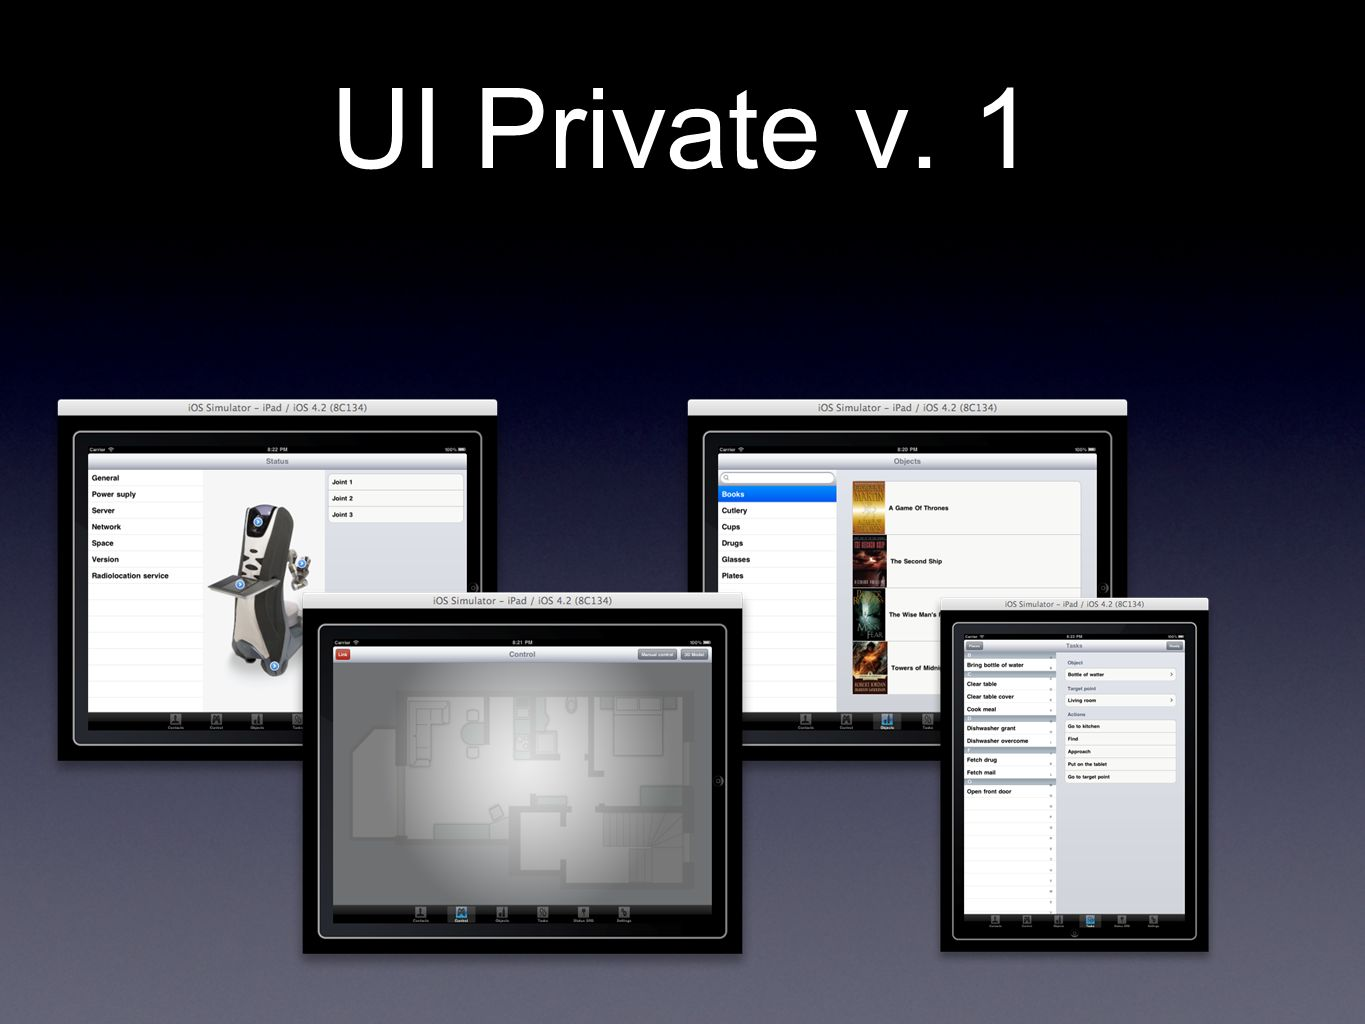 UI Private v. 1